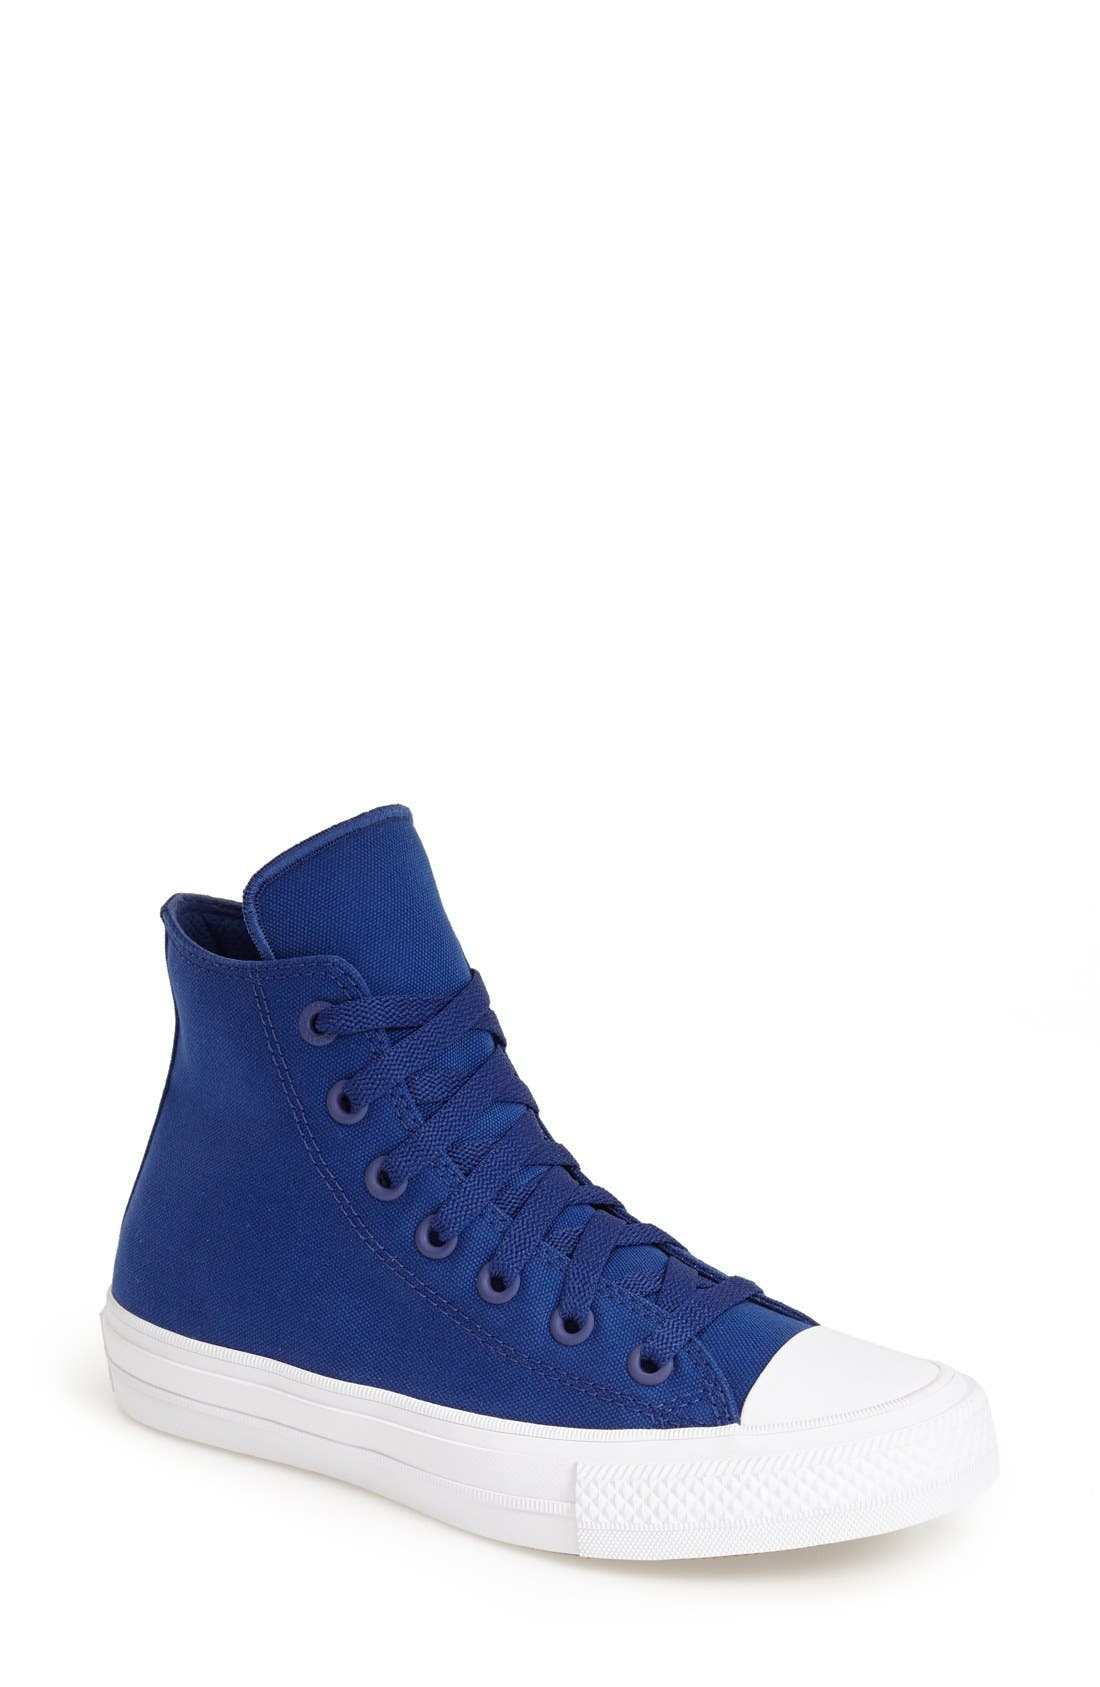 Alternate Image 1 Selected - Converse Chuck Taylor® All Star® 'Chuck II' High Top Sneaker (Women) (Regular Retail Price: $74.95)